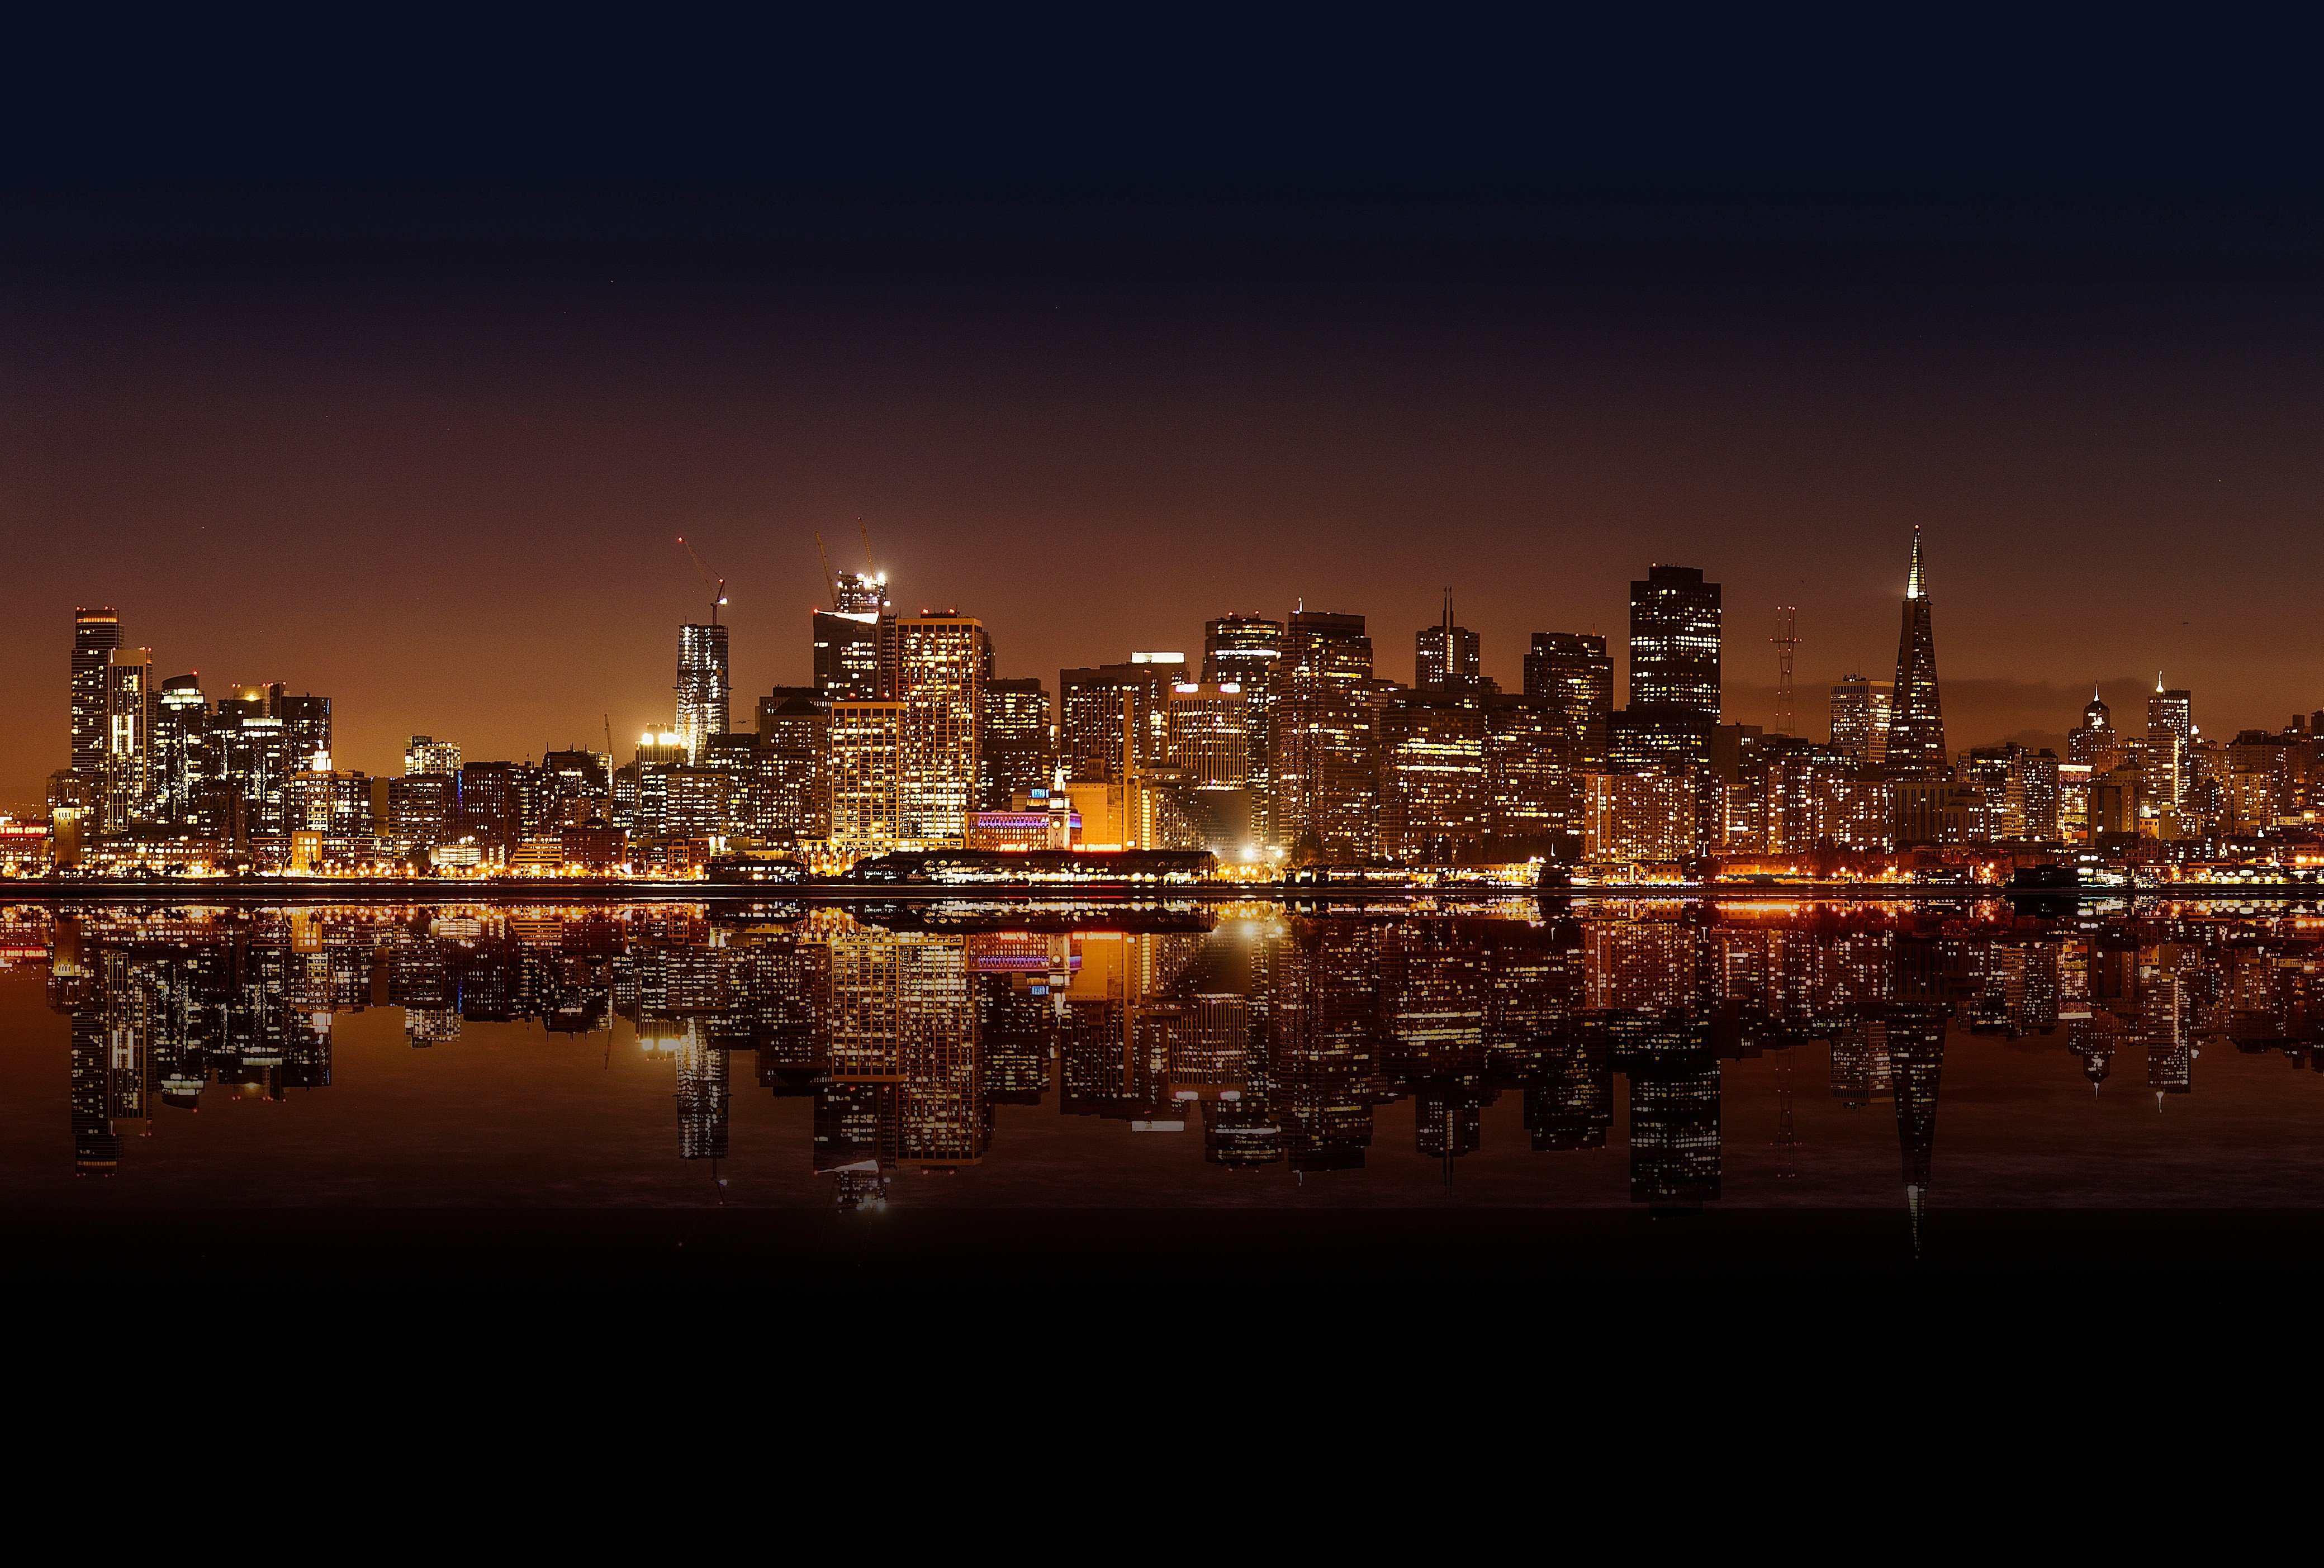 city lights cityscape water night san francisco hd